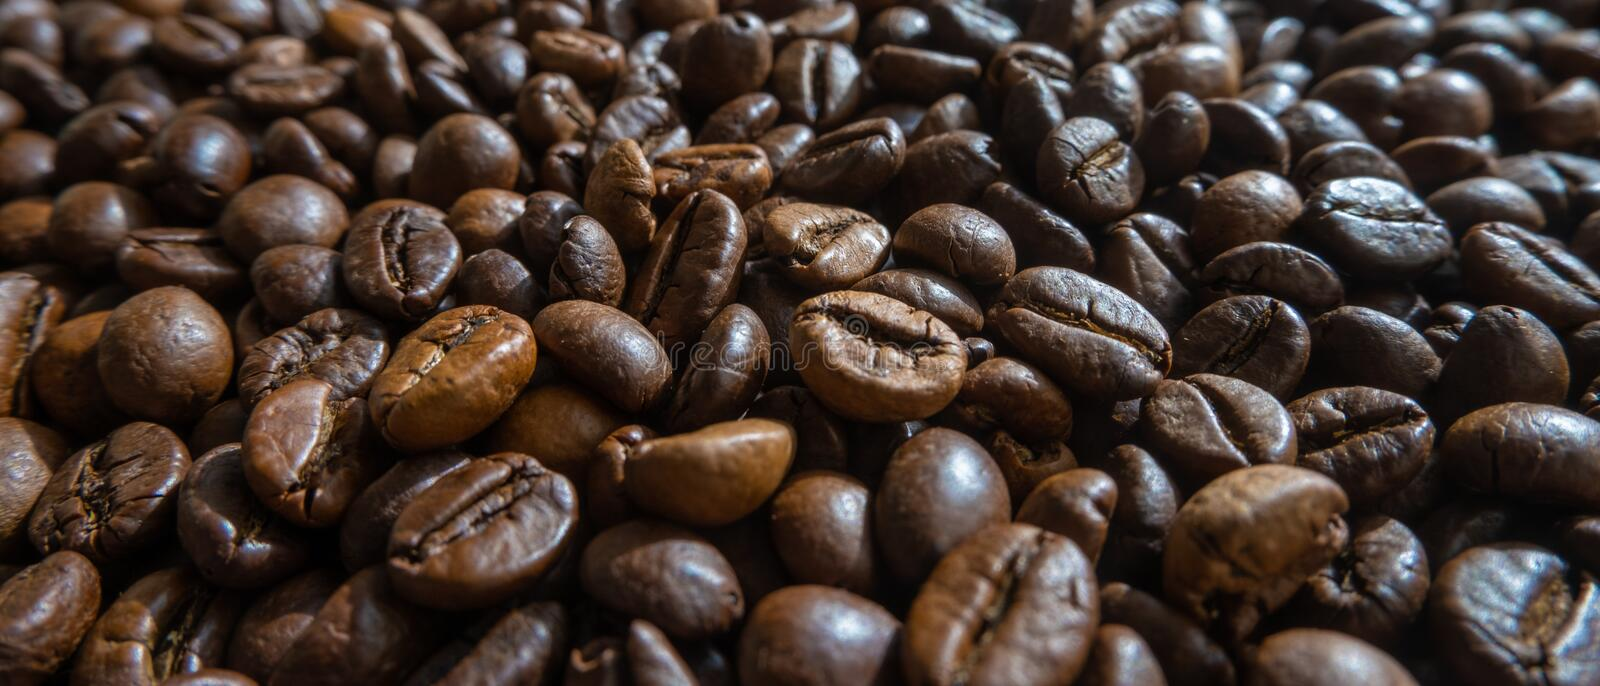 Fresh roasted coffee beans close up. Wide background. Fresh roasted coffee beans close up. Low angle shot, wide background royalty free stock image